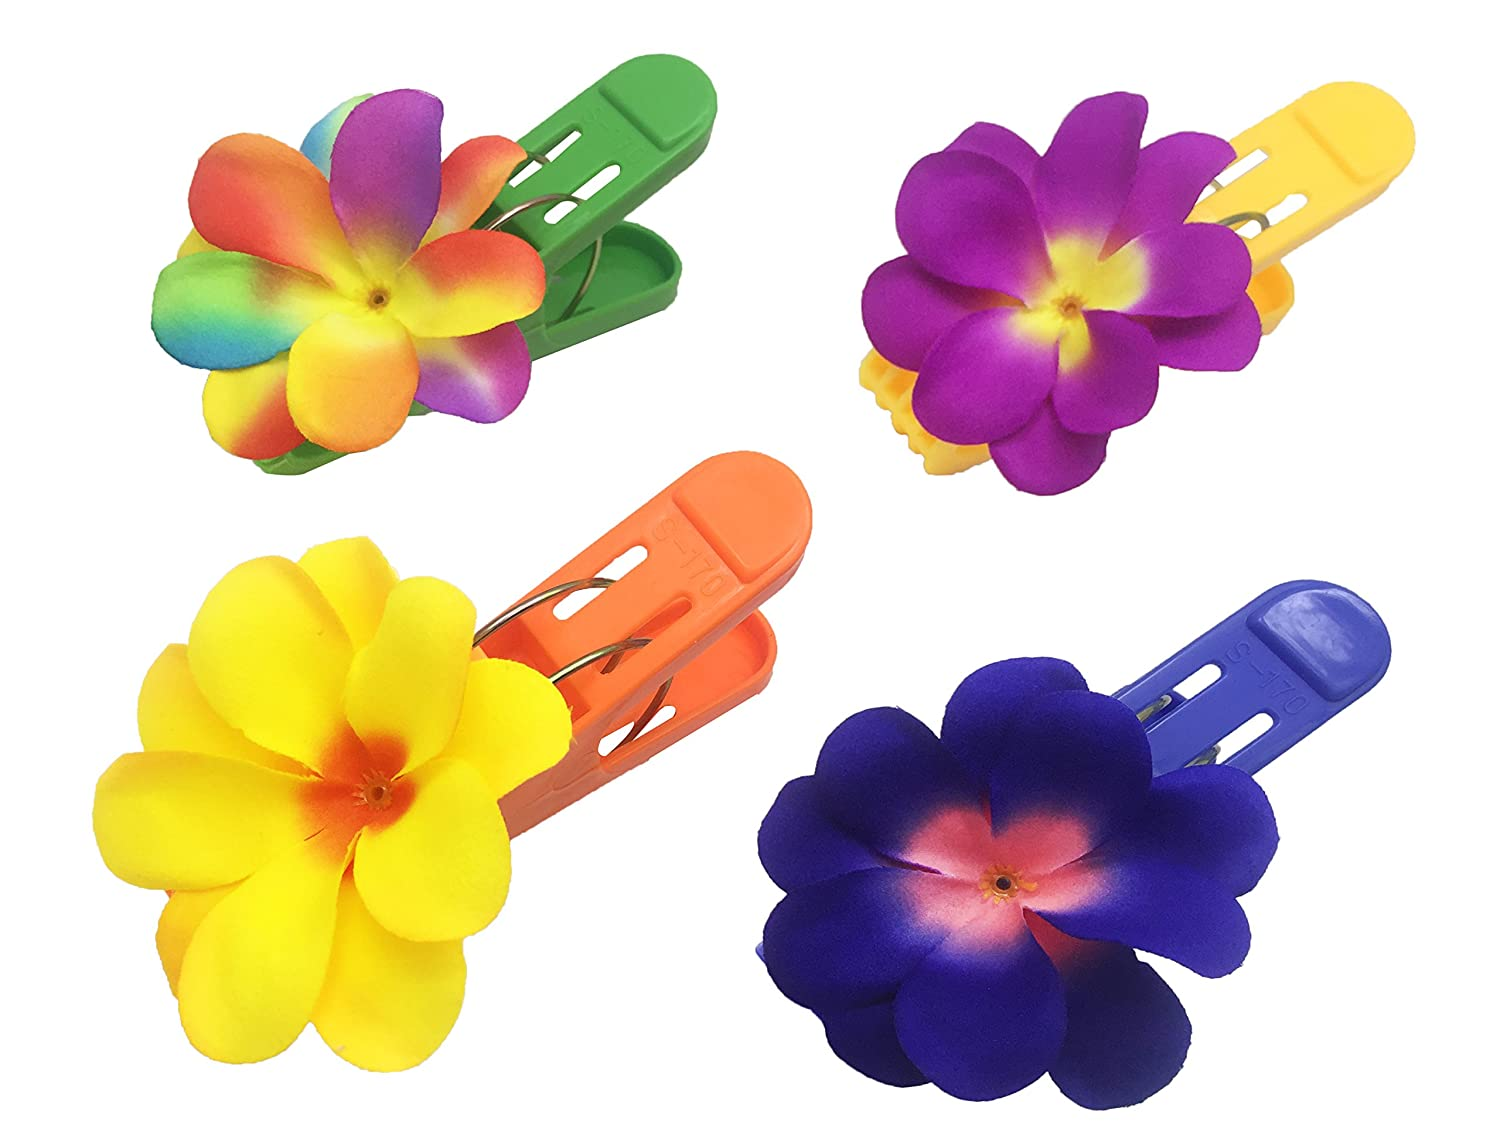 (Set of 4) Beach Towel Tropical and Colorful Plumeria Clips Jumbo Size (5 inches) for Beach Chair Or Pool Loungers on Your Cruise